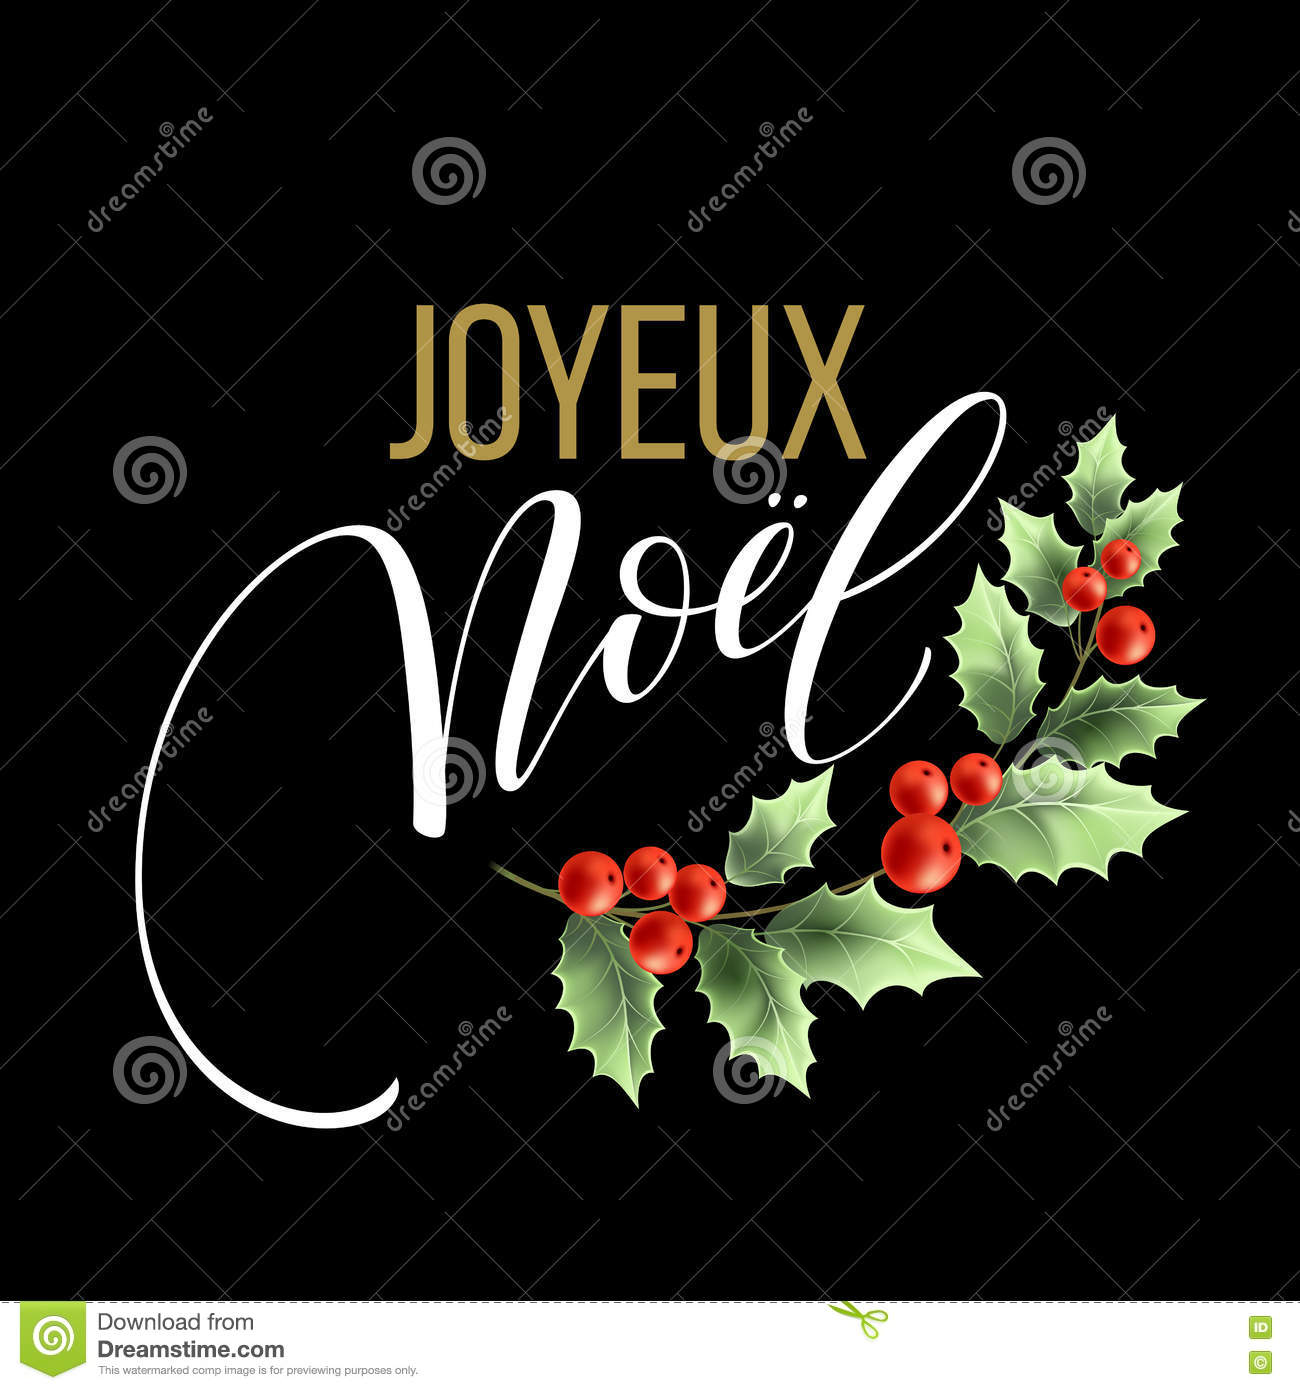 Merry Christmas Card Template With Greetings In French